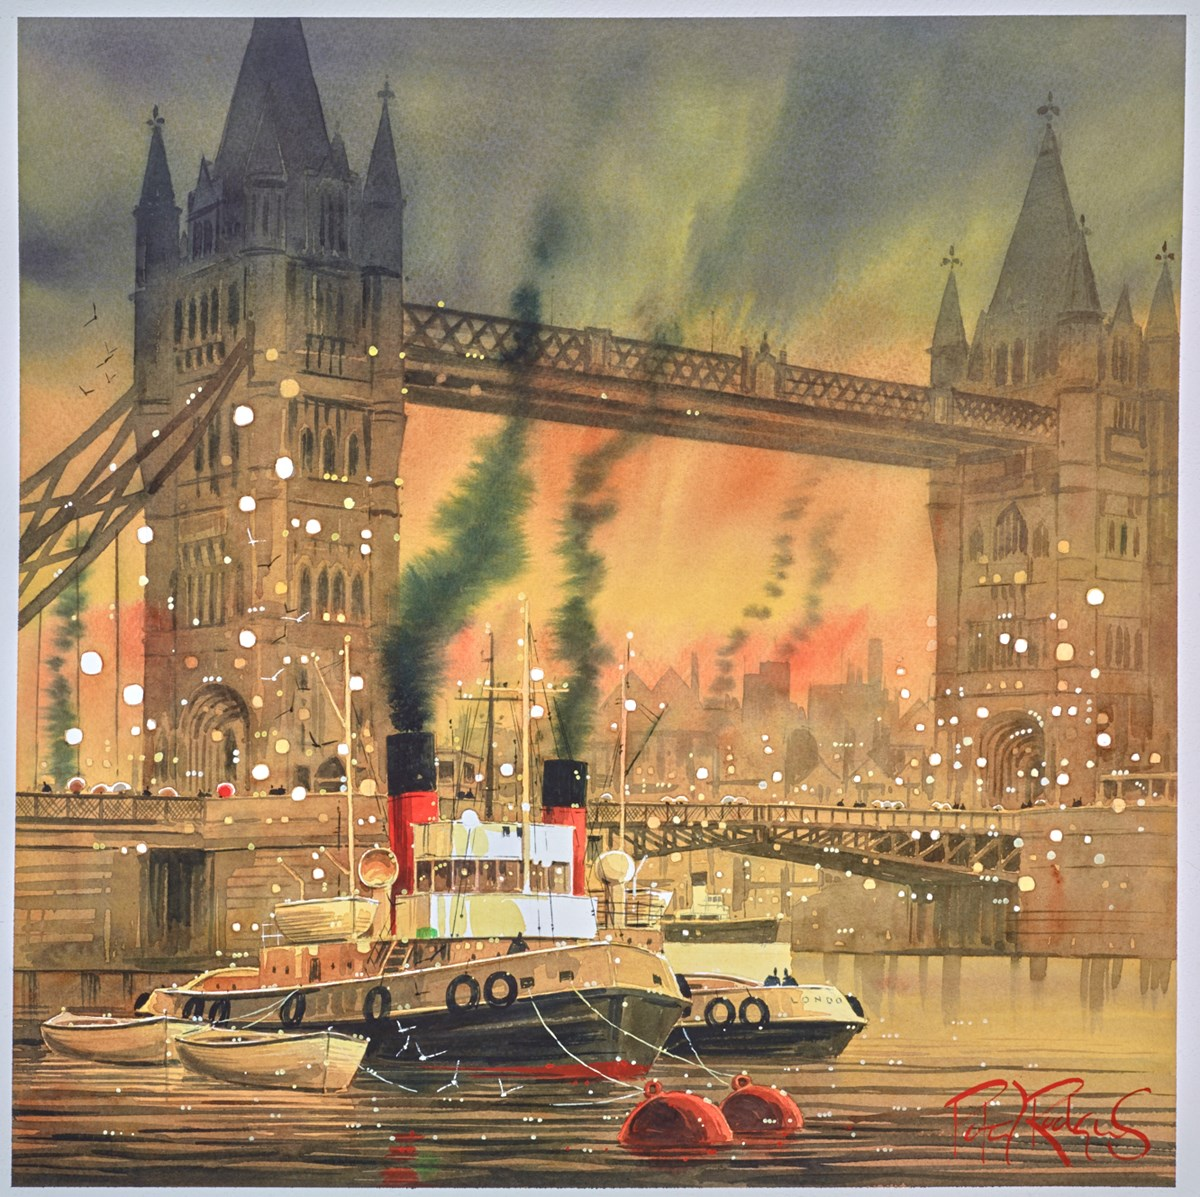 London Tugs by peter j rodgers -  sized 20x20 inches. Available from Whitewall Galleries